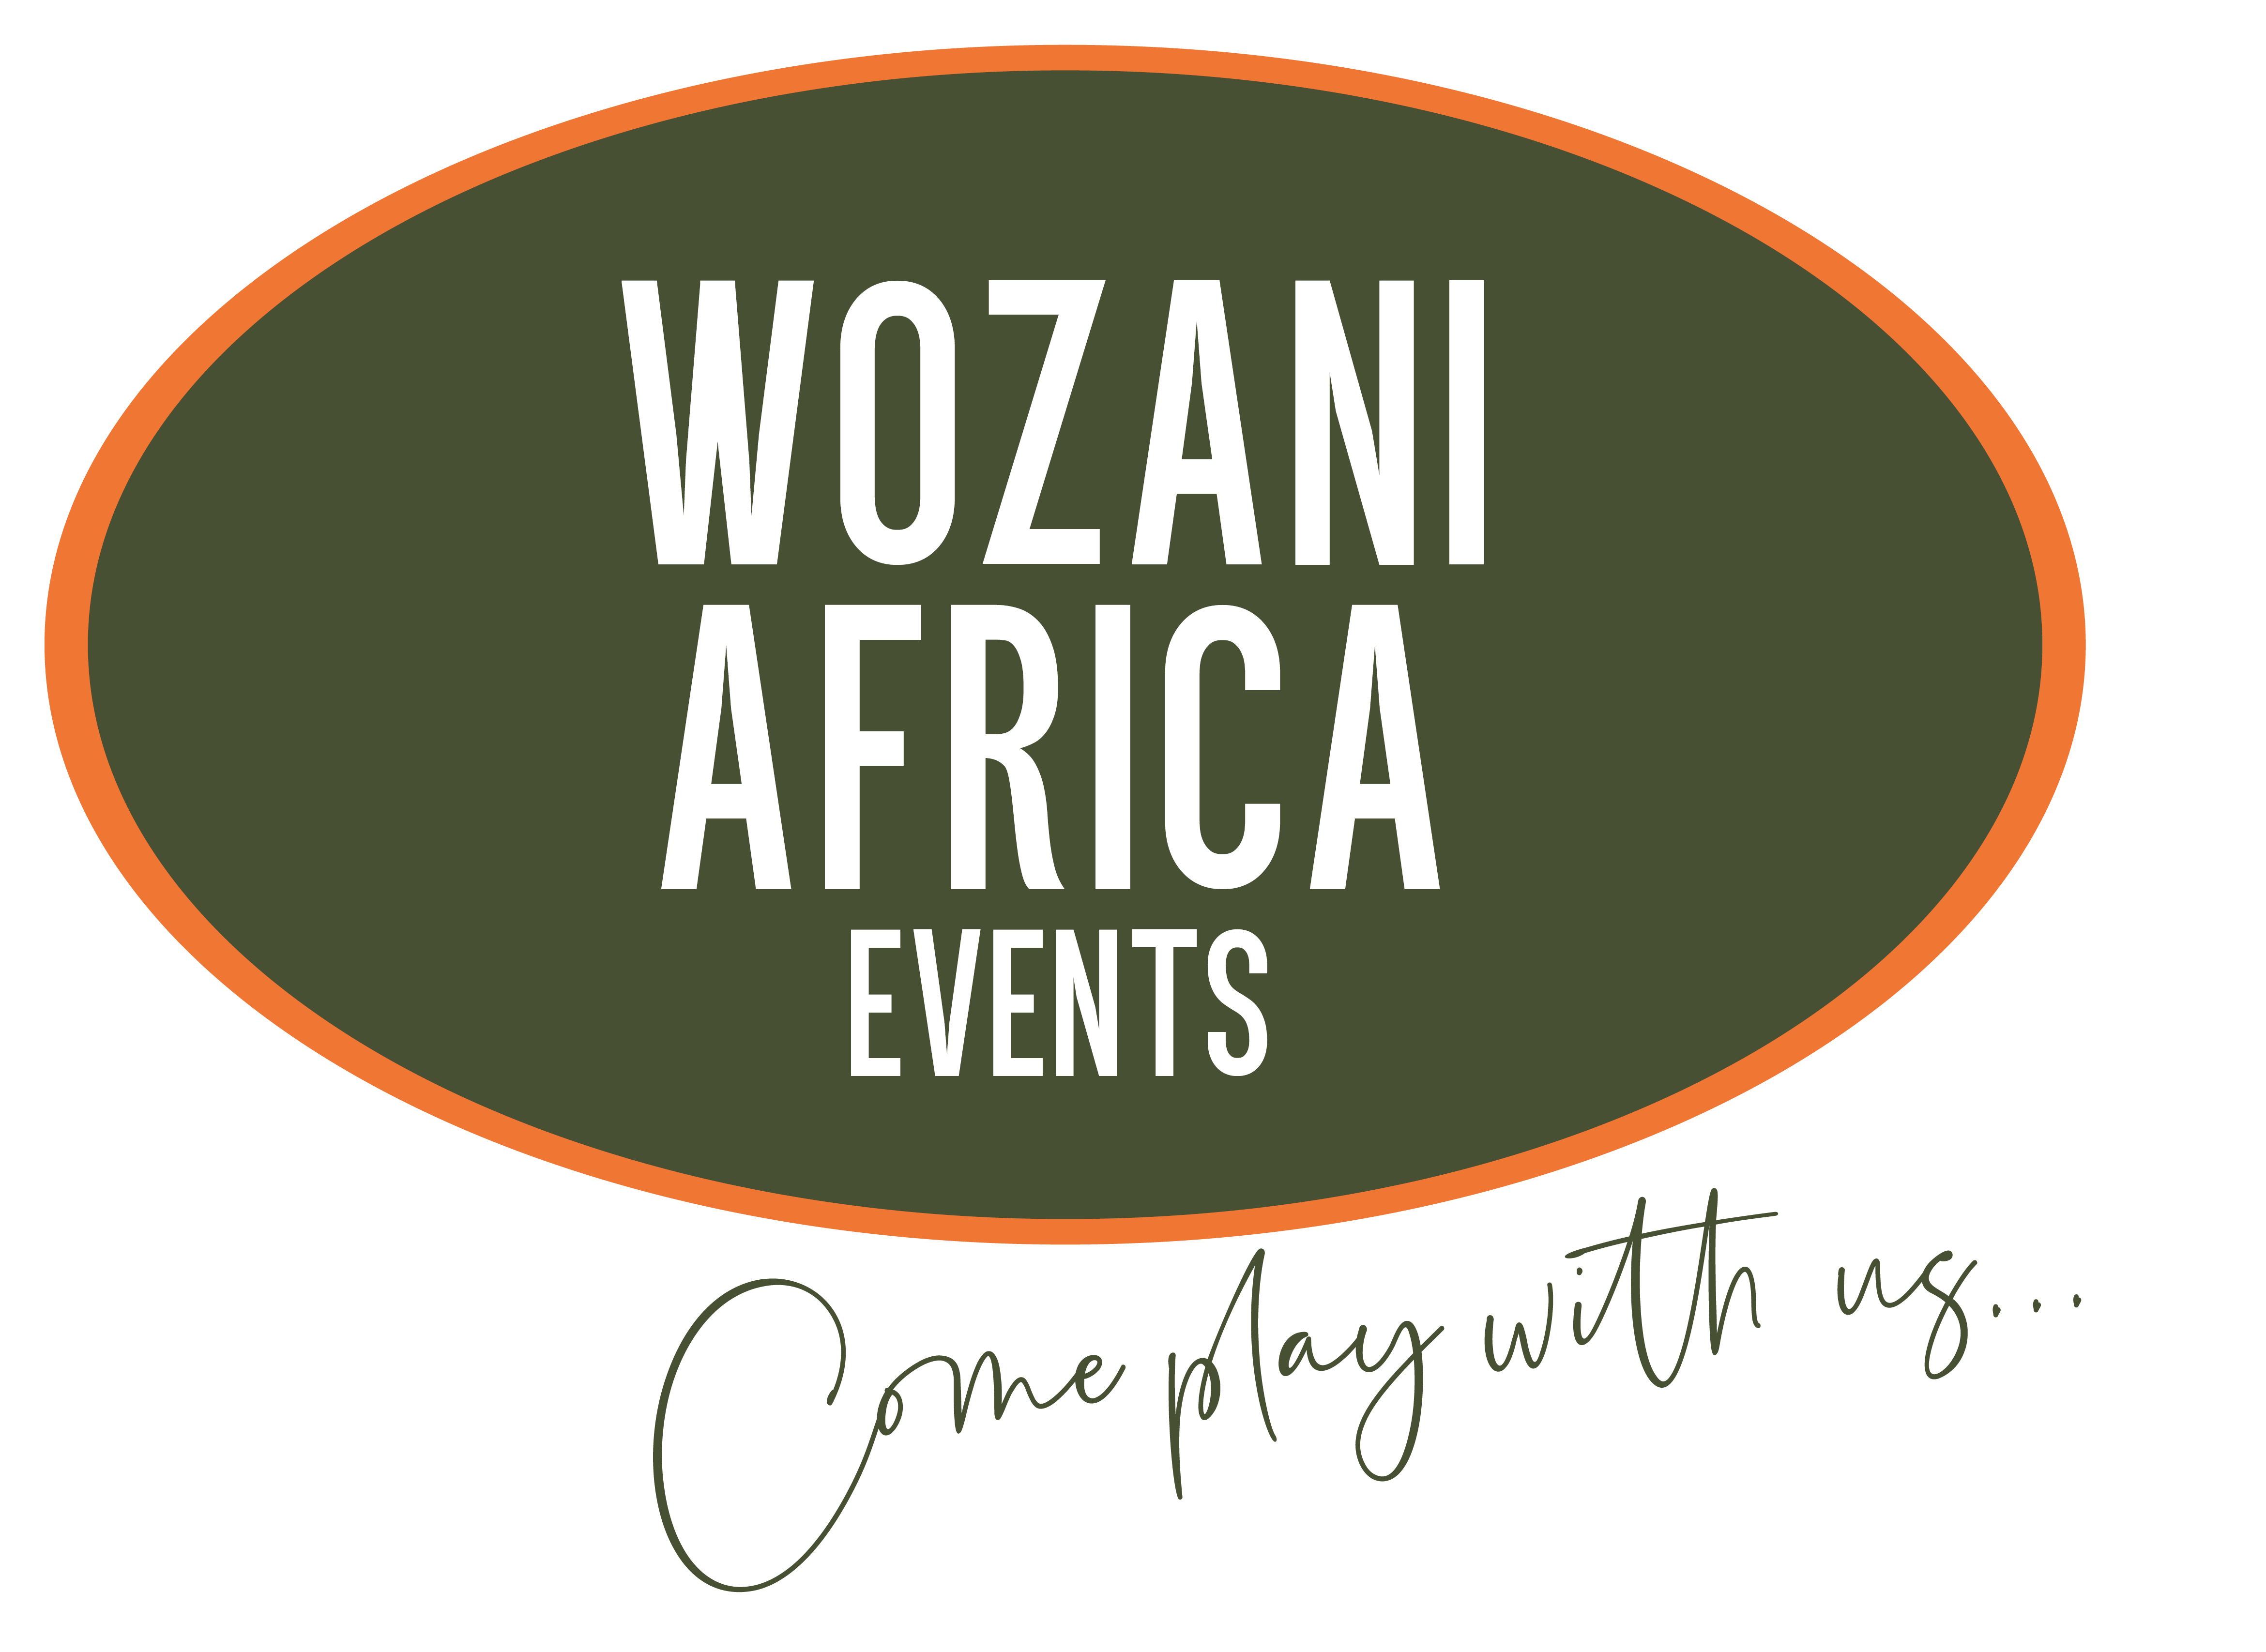 WOZANI AFRICA EVENTS